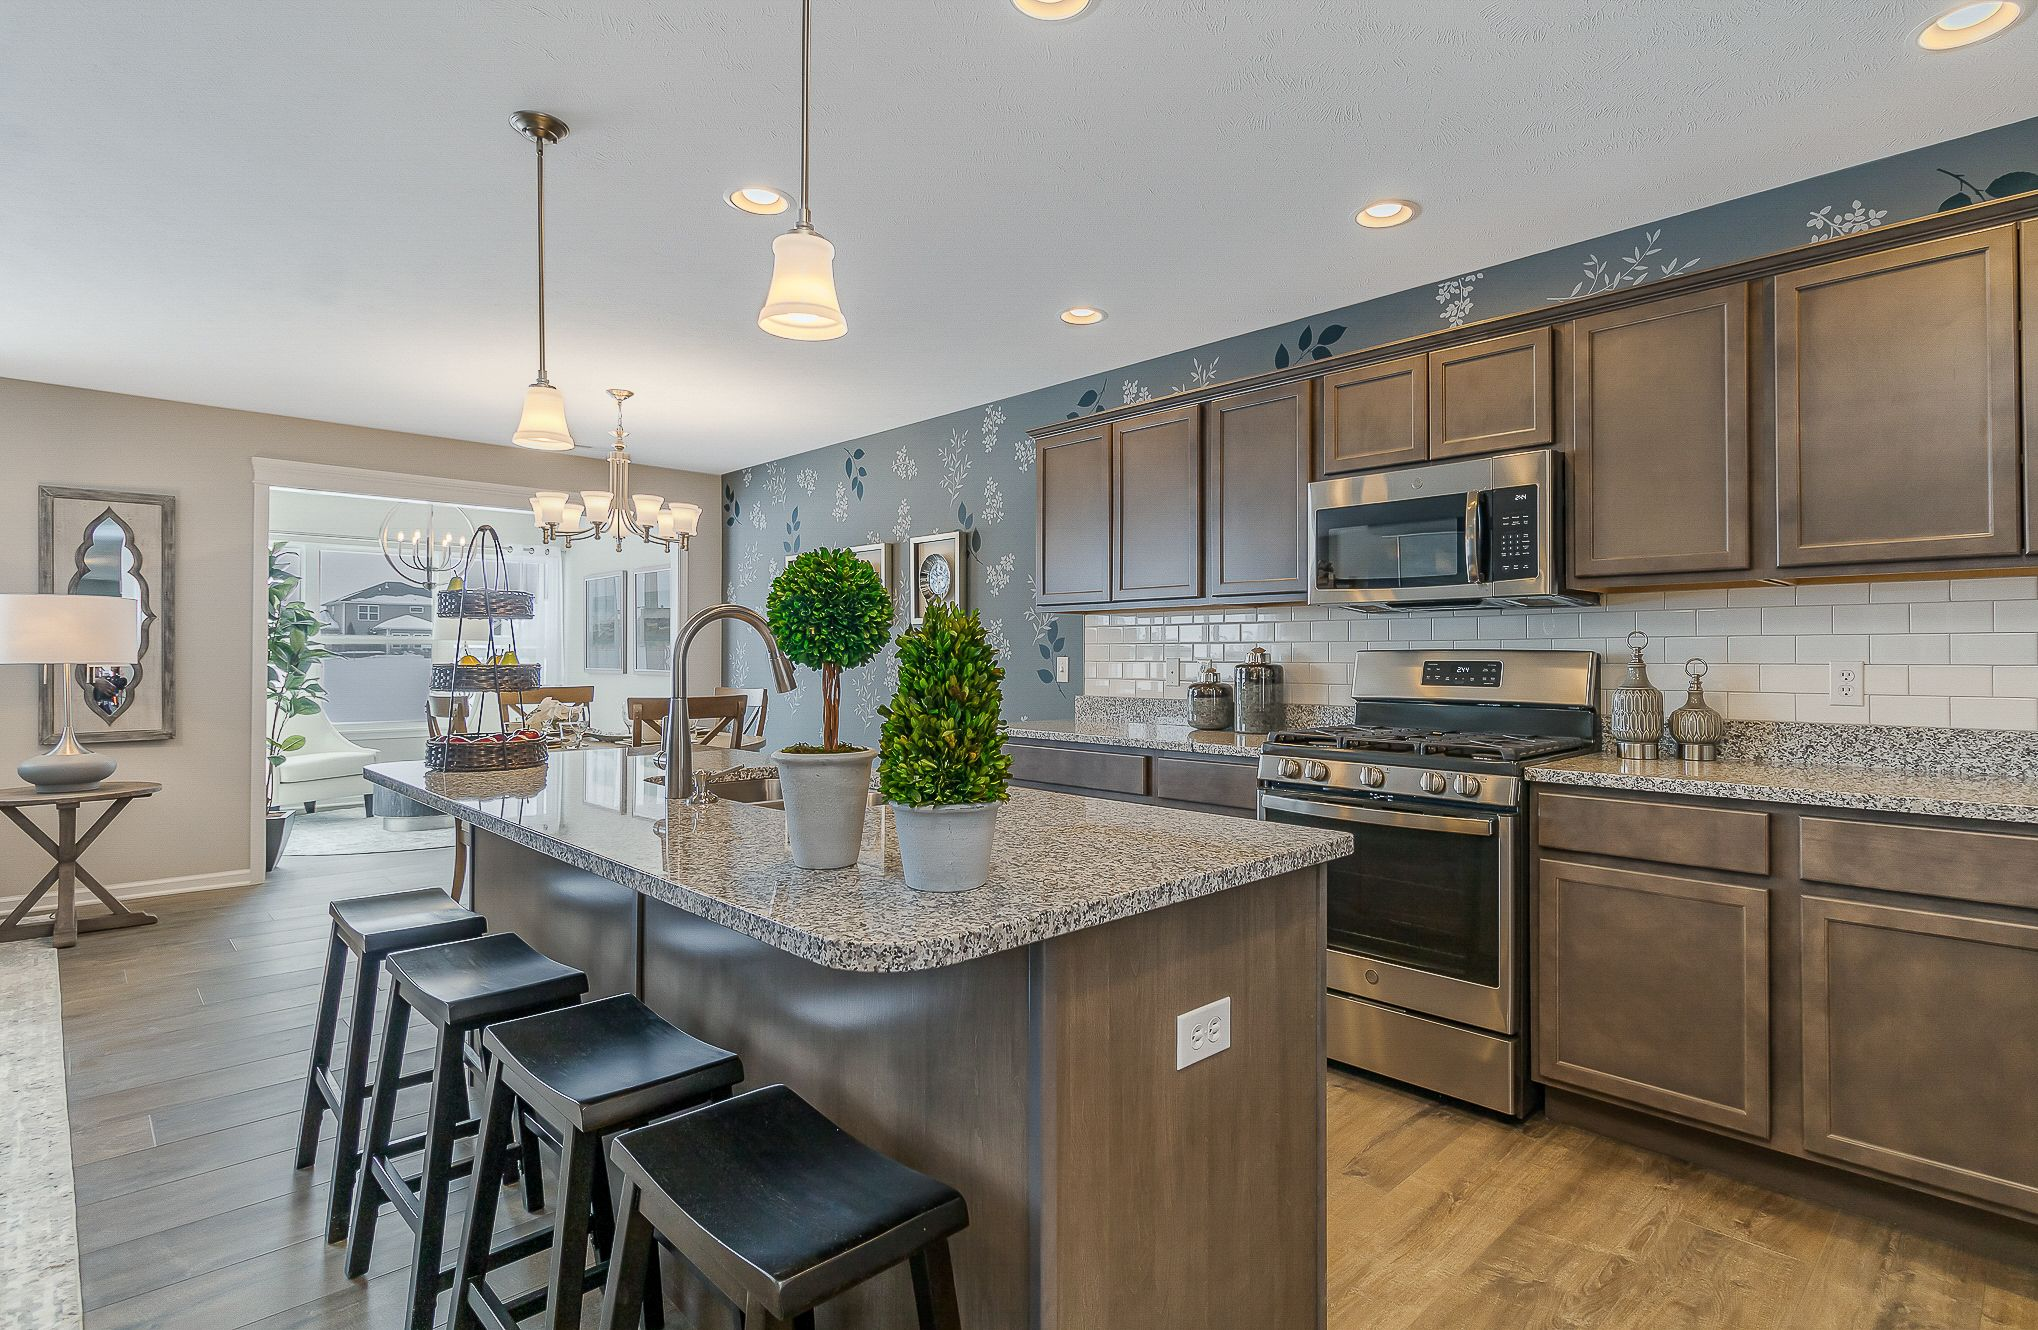 Kitchen featured in the Cordoba By Olthof Homes in Indianapolis, IN